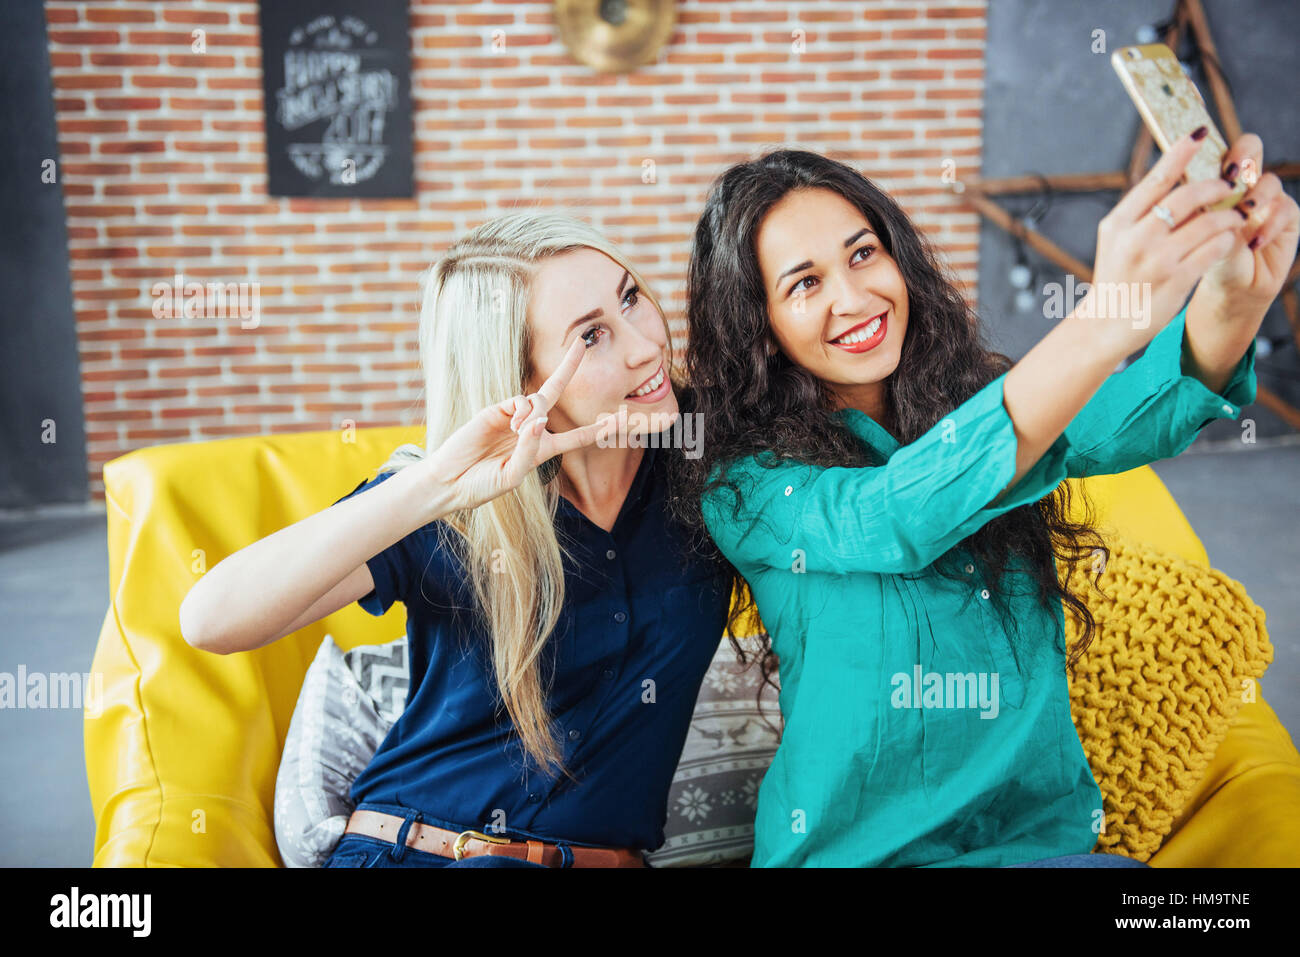 Two beautiful young woman doing selfie in a cafe, best friends girls together having fun, posing emotional lifestyle - Stock Image